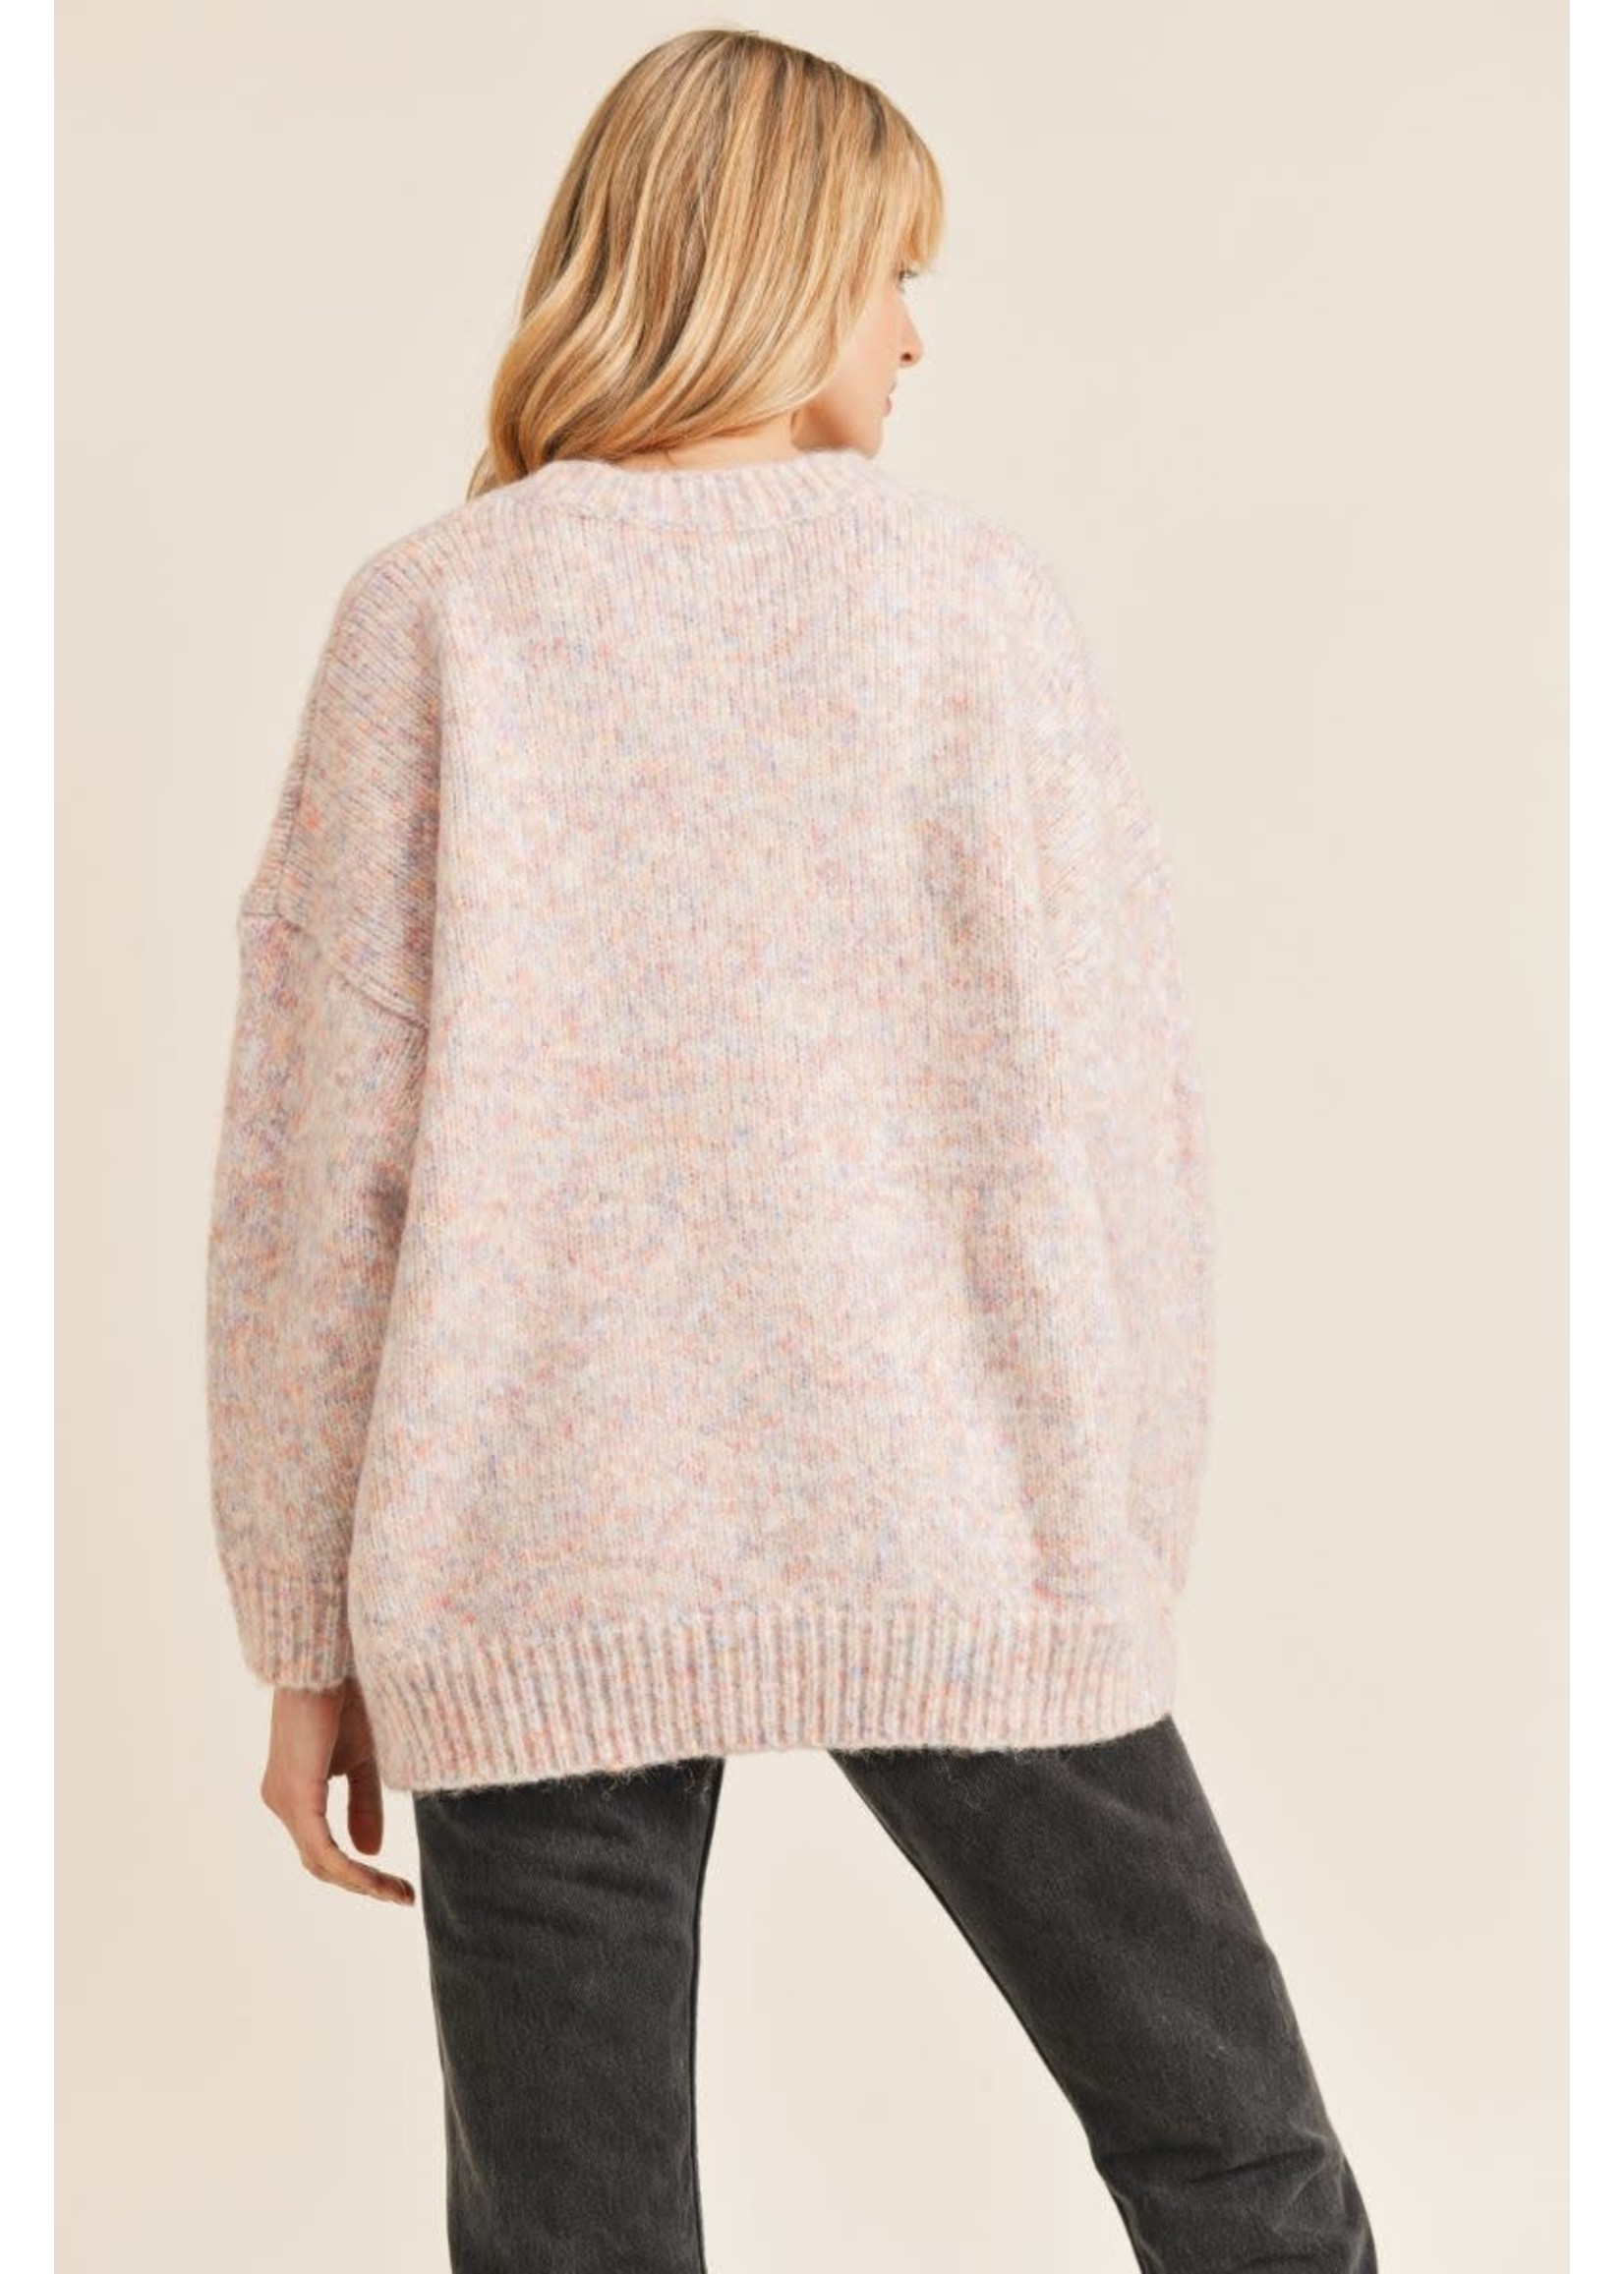 Sadie & Sage Come Chill Pullover Sweater - AC342474